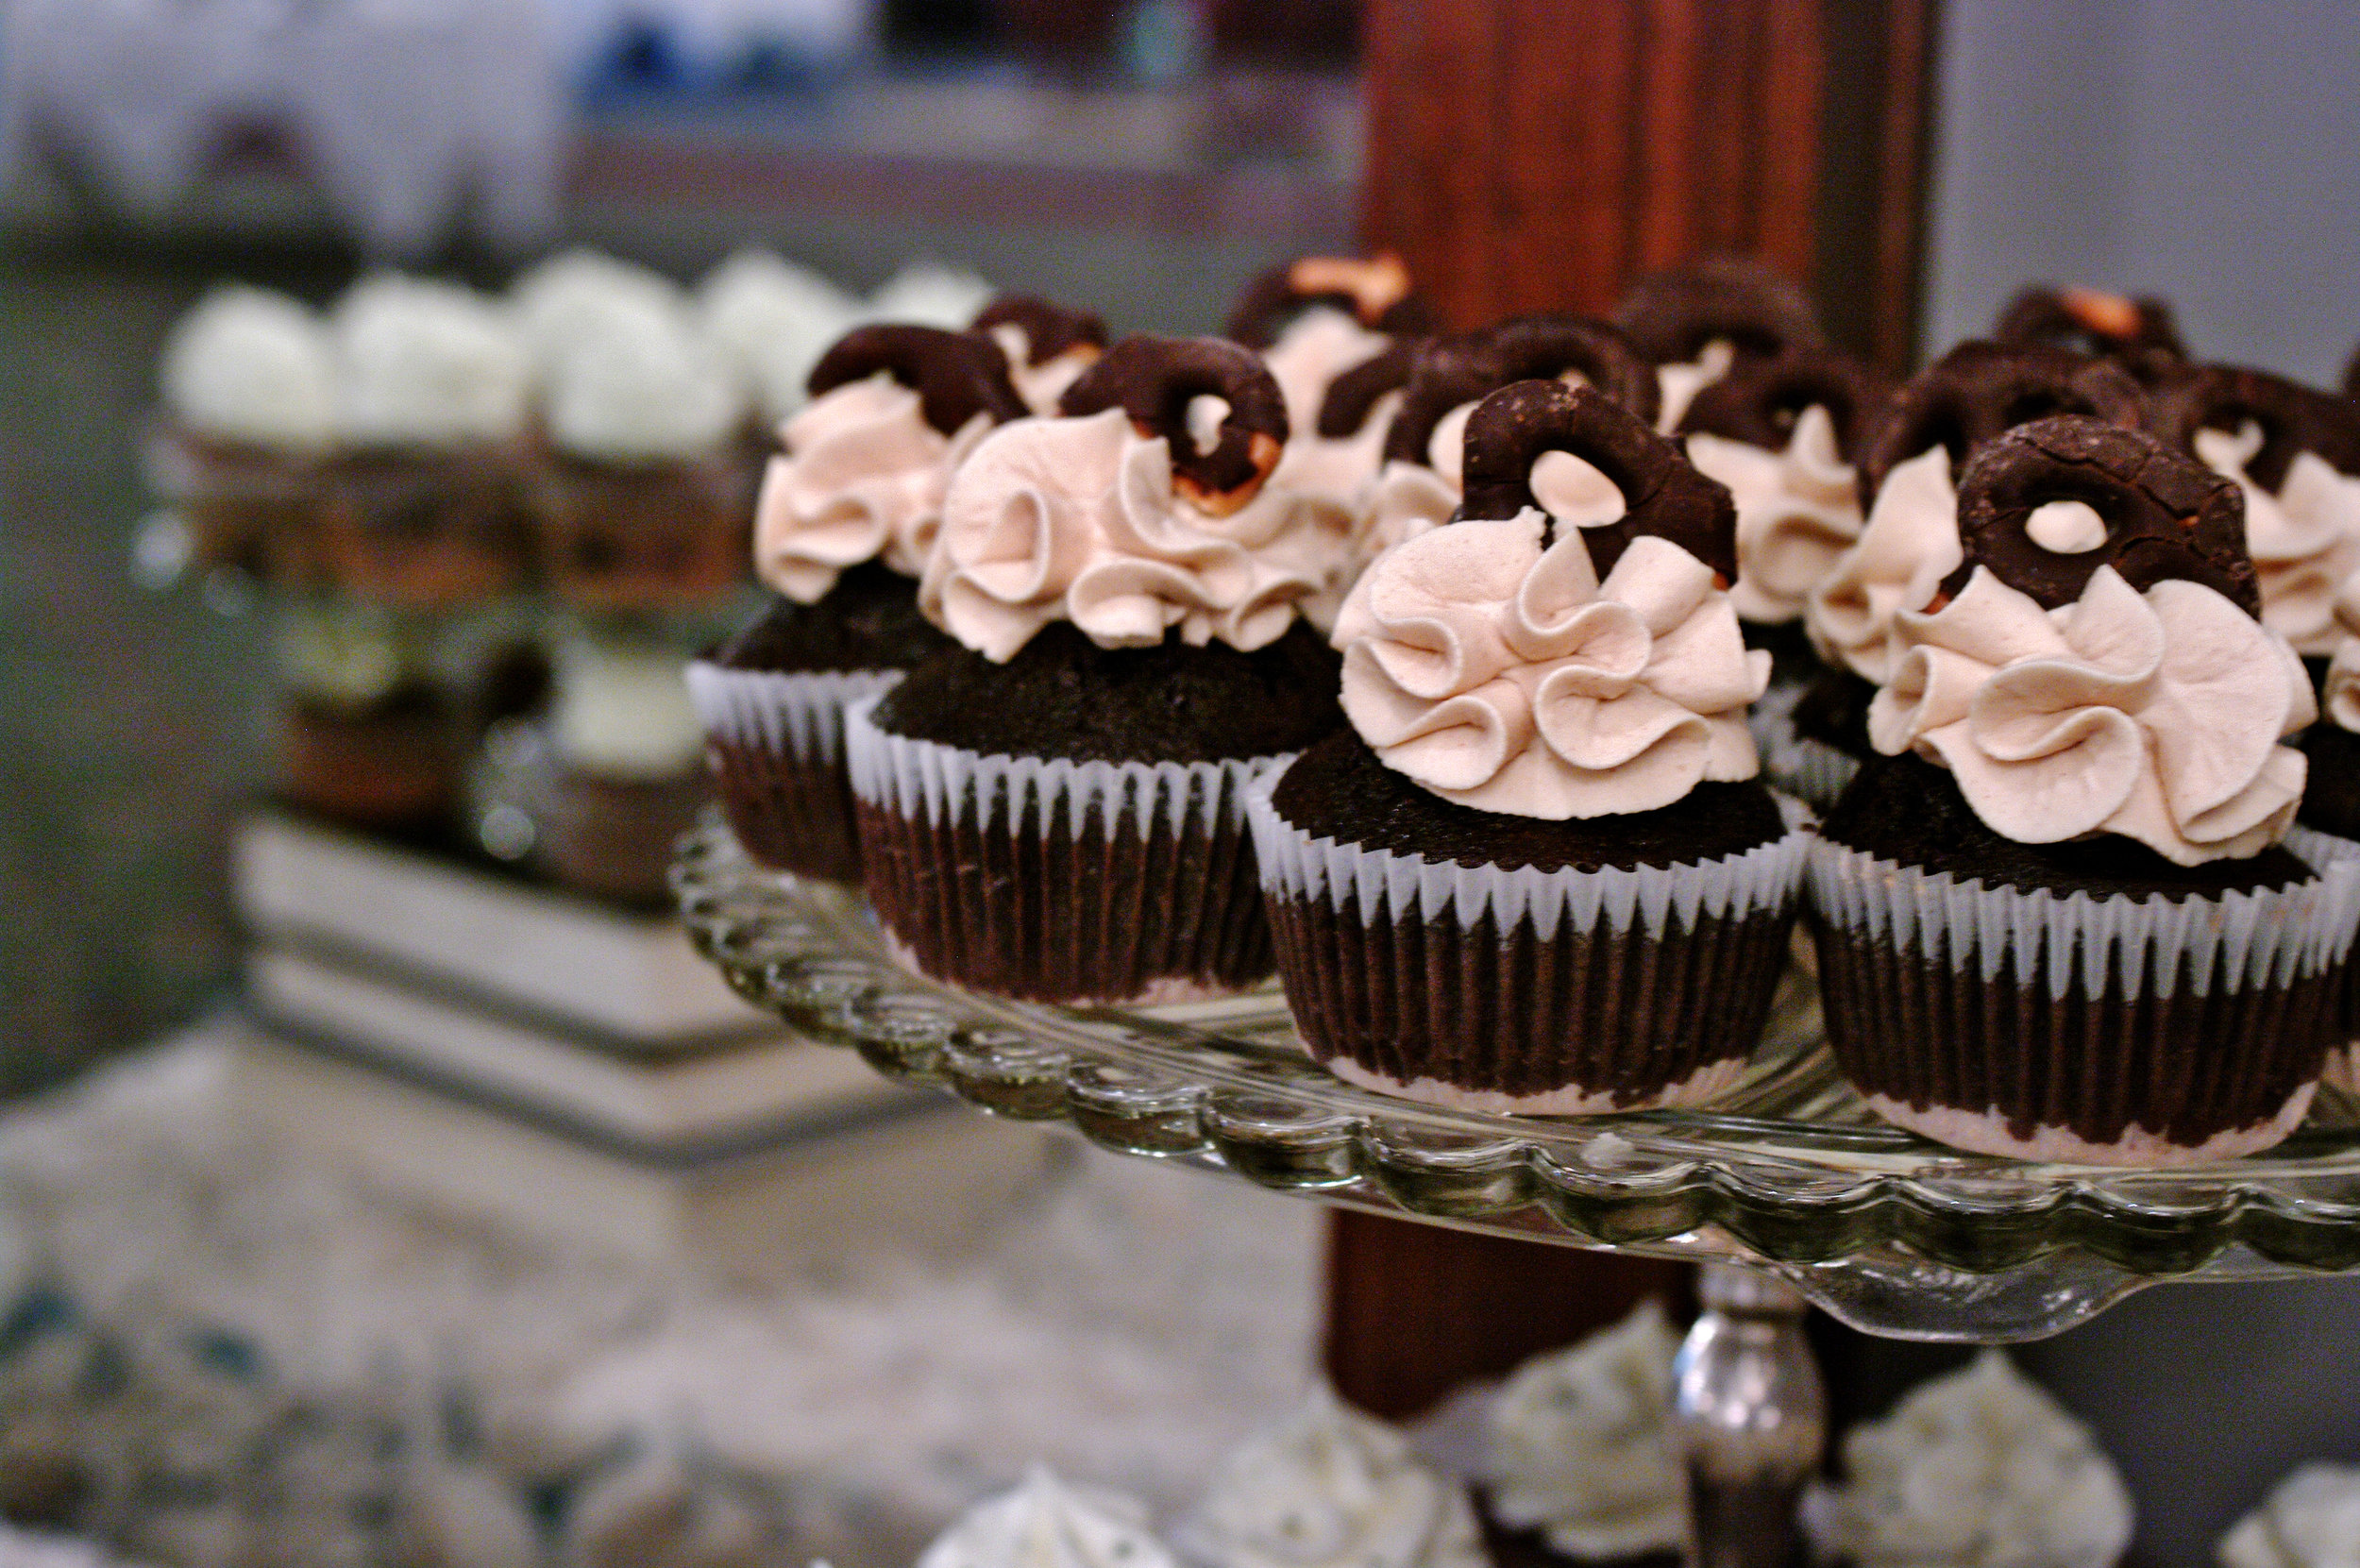 Gourmet desserts for your wedding or special event...